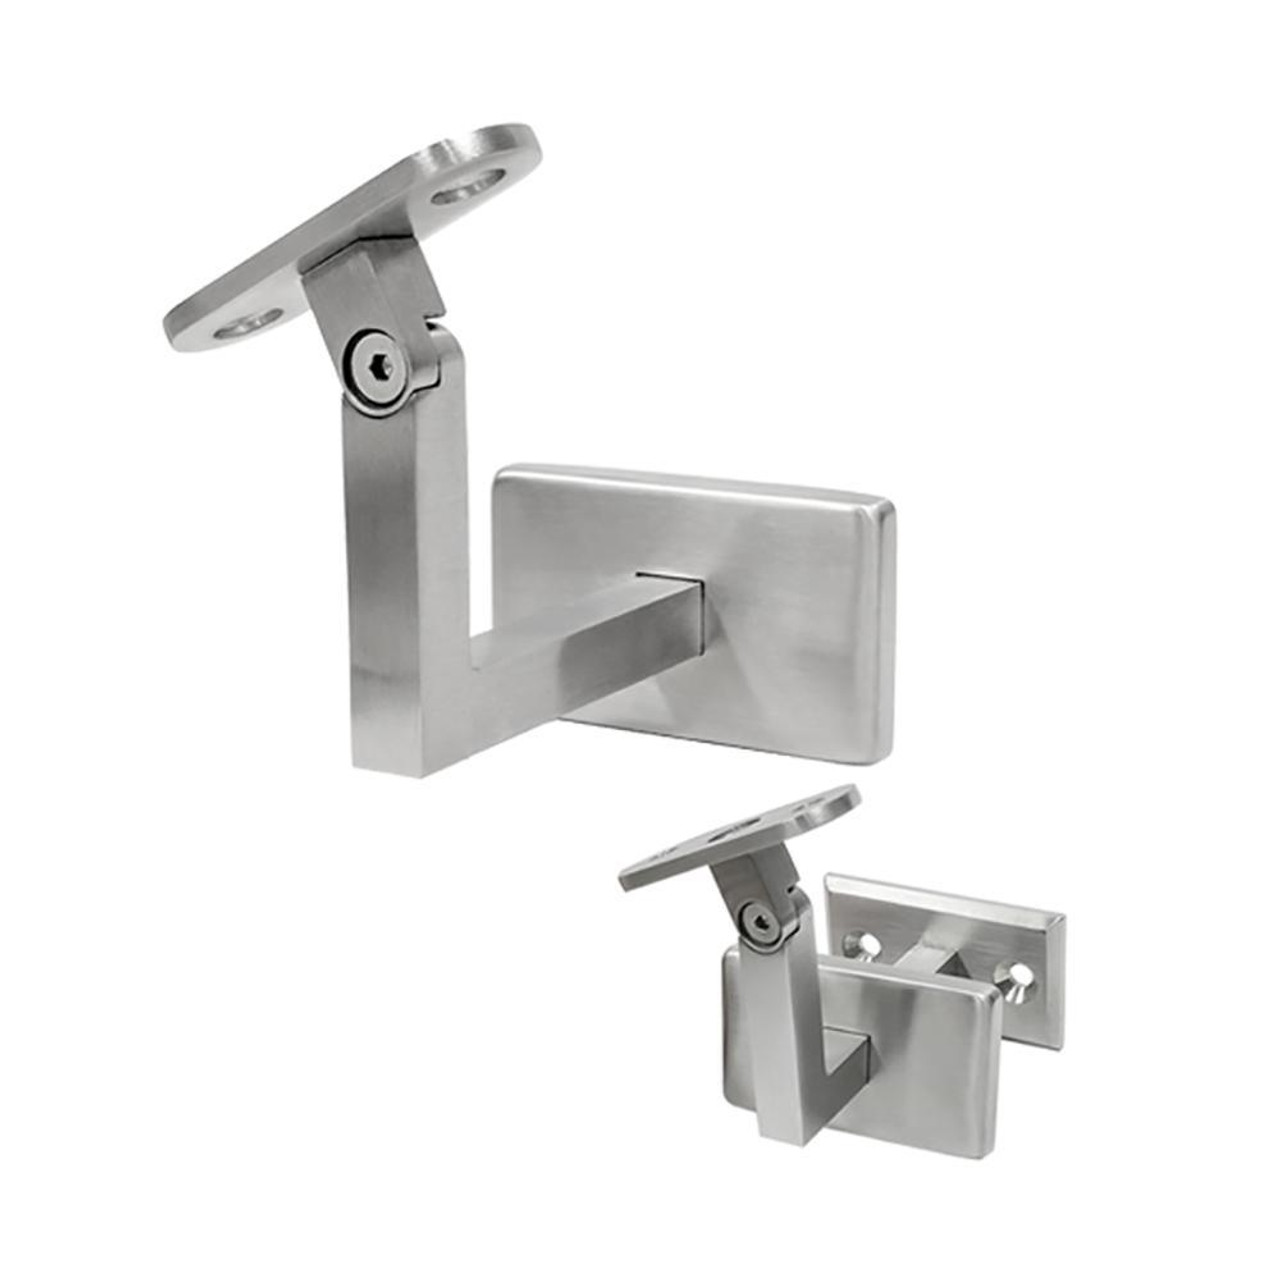 Adjustable Wall Handrail Support for Square or Flat Handrail 74 mm tall